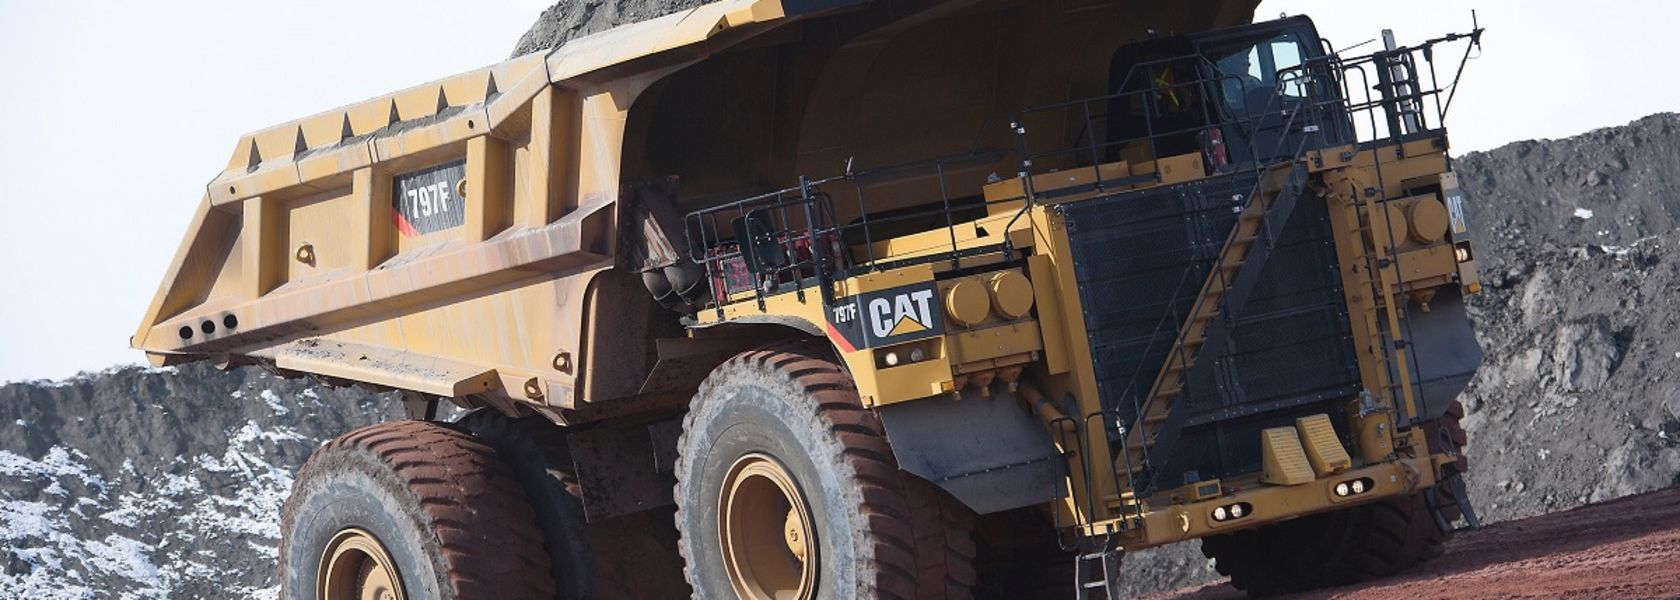 Cab-less haul truck approaching